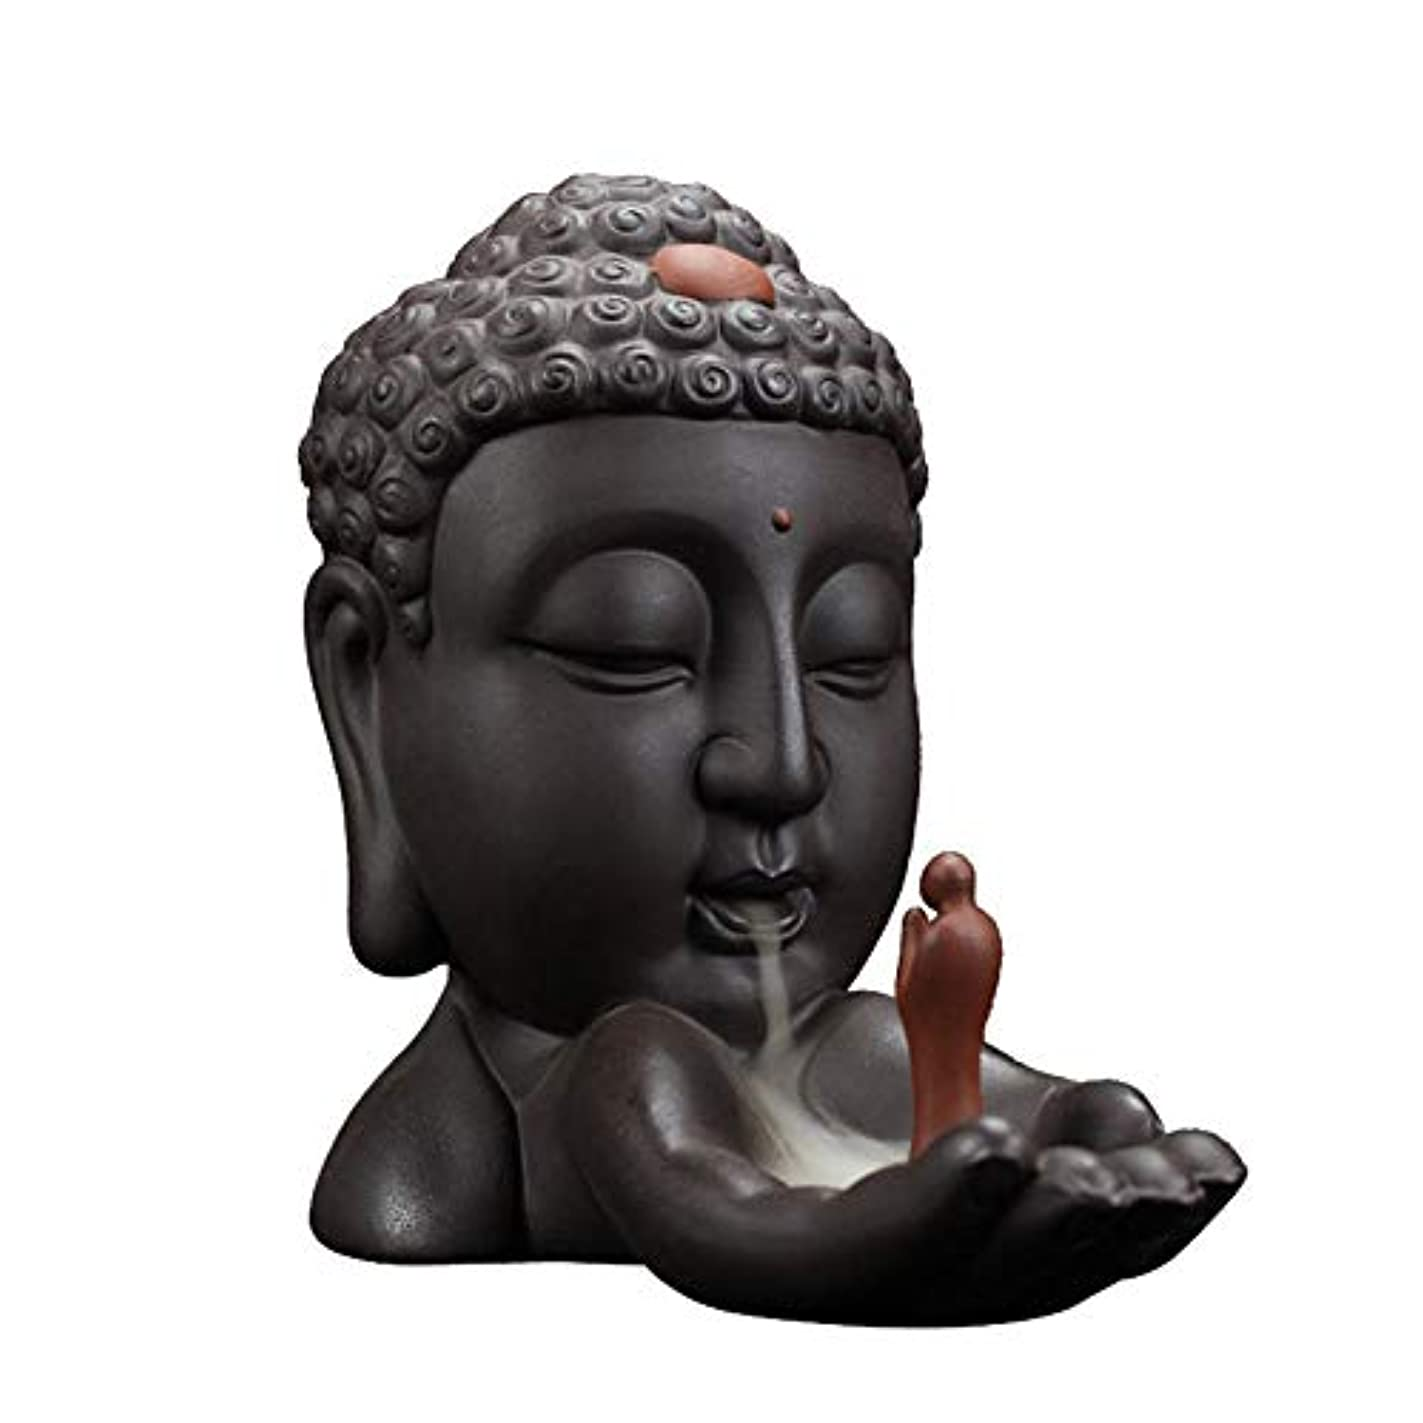 ビバびん麦芽Alenx Backflow Incense Burner Buddha、長い燃焼香炉、Backflow Incense Burner Waterfall 1 Incense Burner + 10pcs Backflow Incense Cones